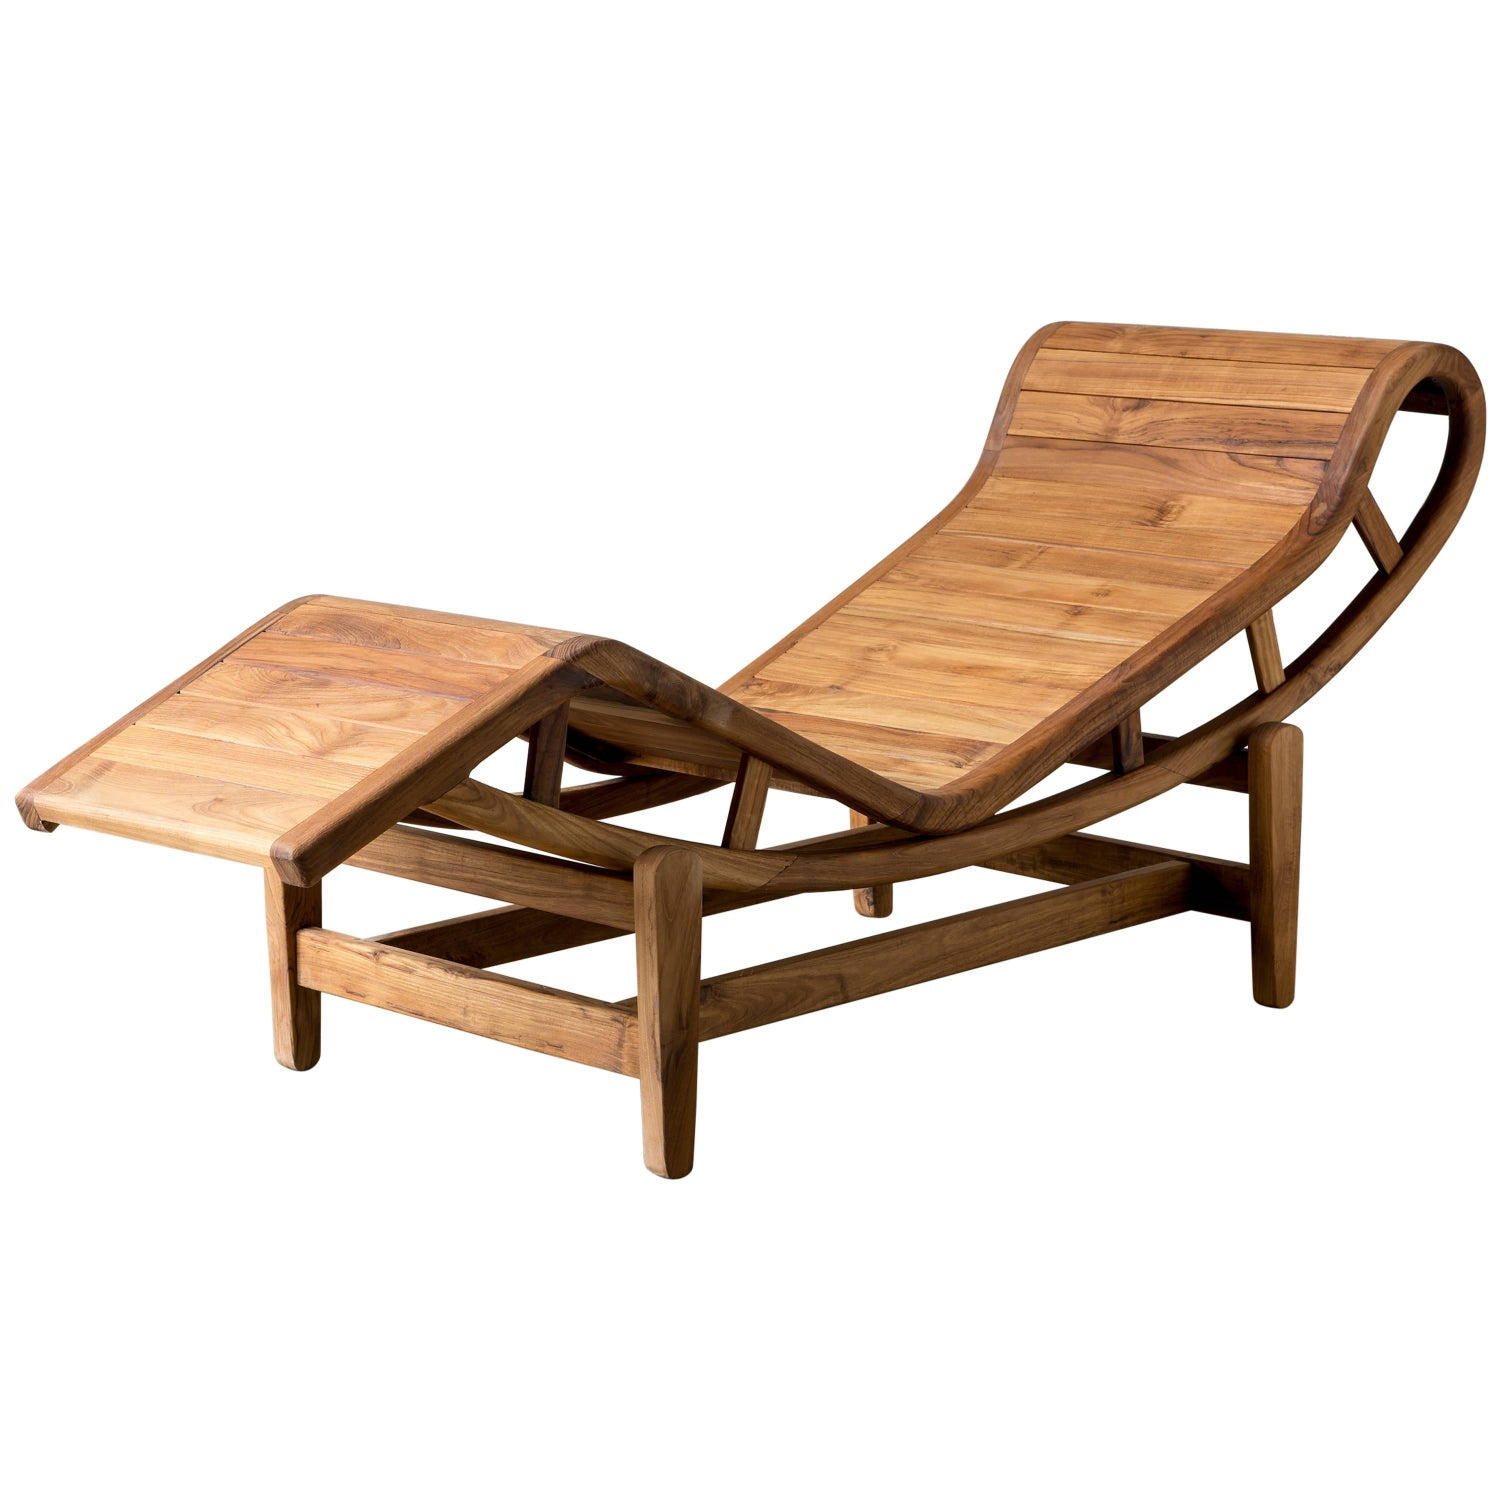 Vintage Le Corbusier LC4 Style Chaise Lounge at 1stdibs